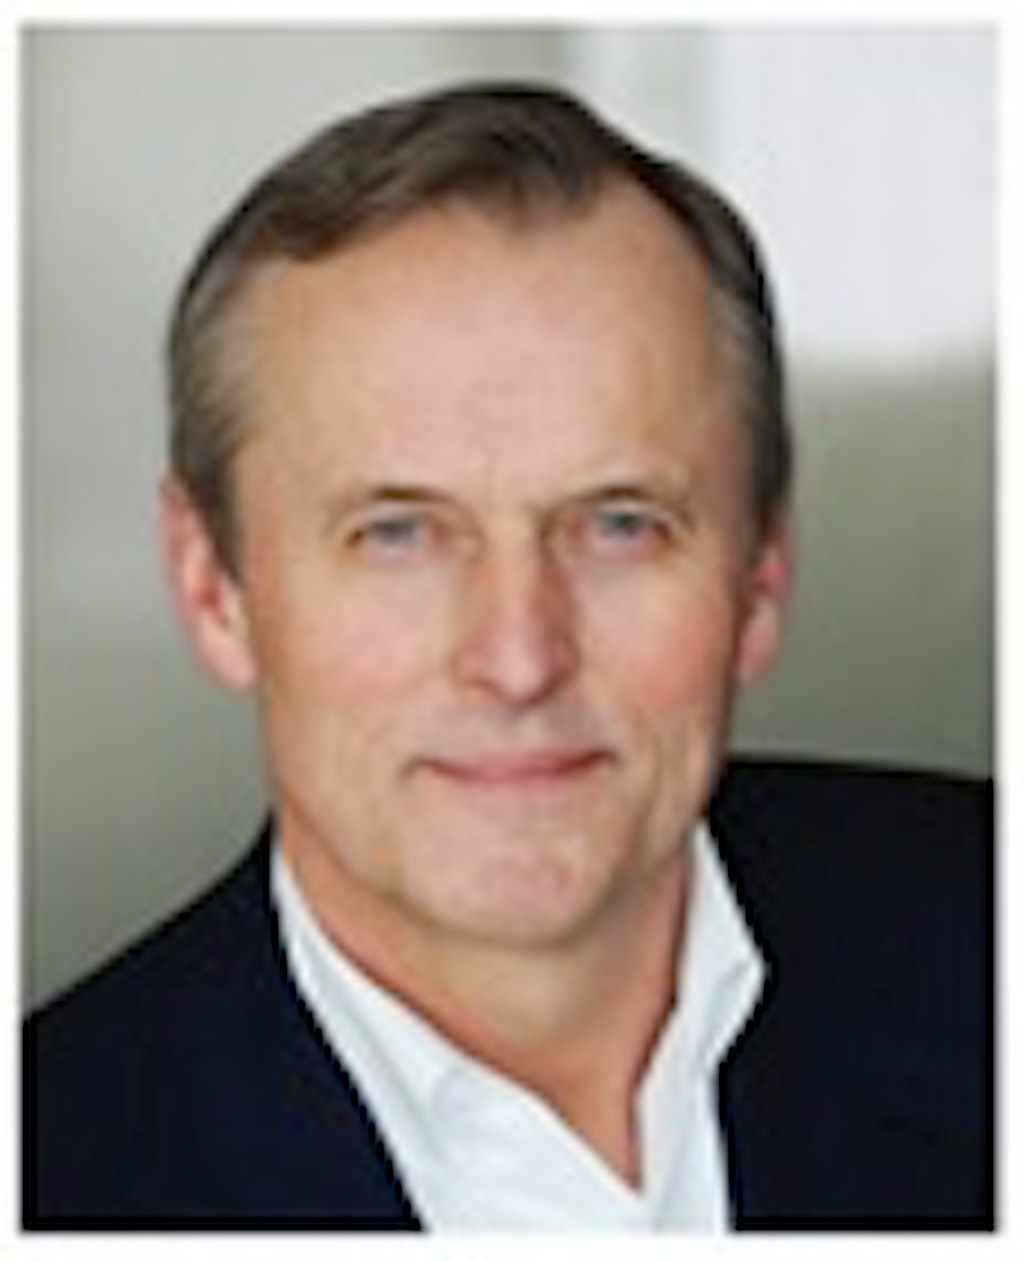 NEW VOICES: John Grisham Asks-- Why is Teresa Lewis on Death Row?